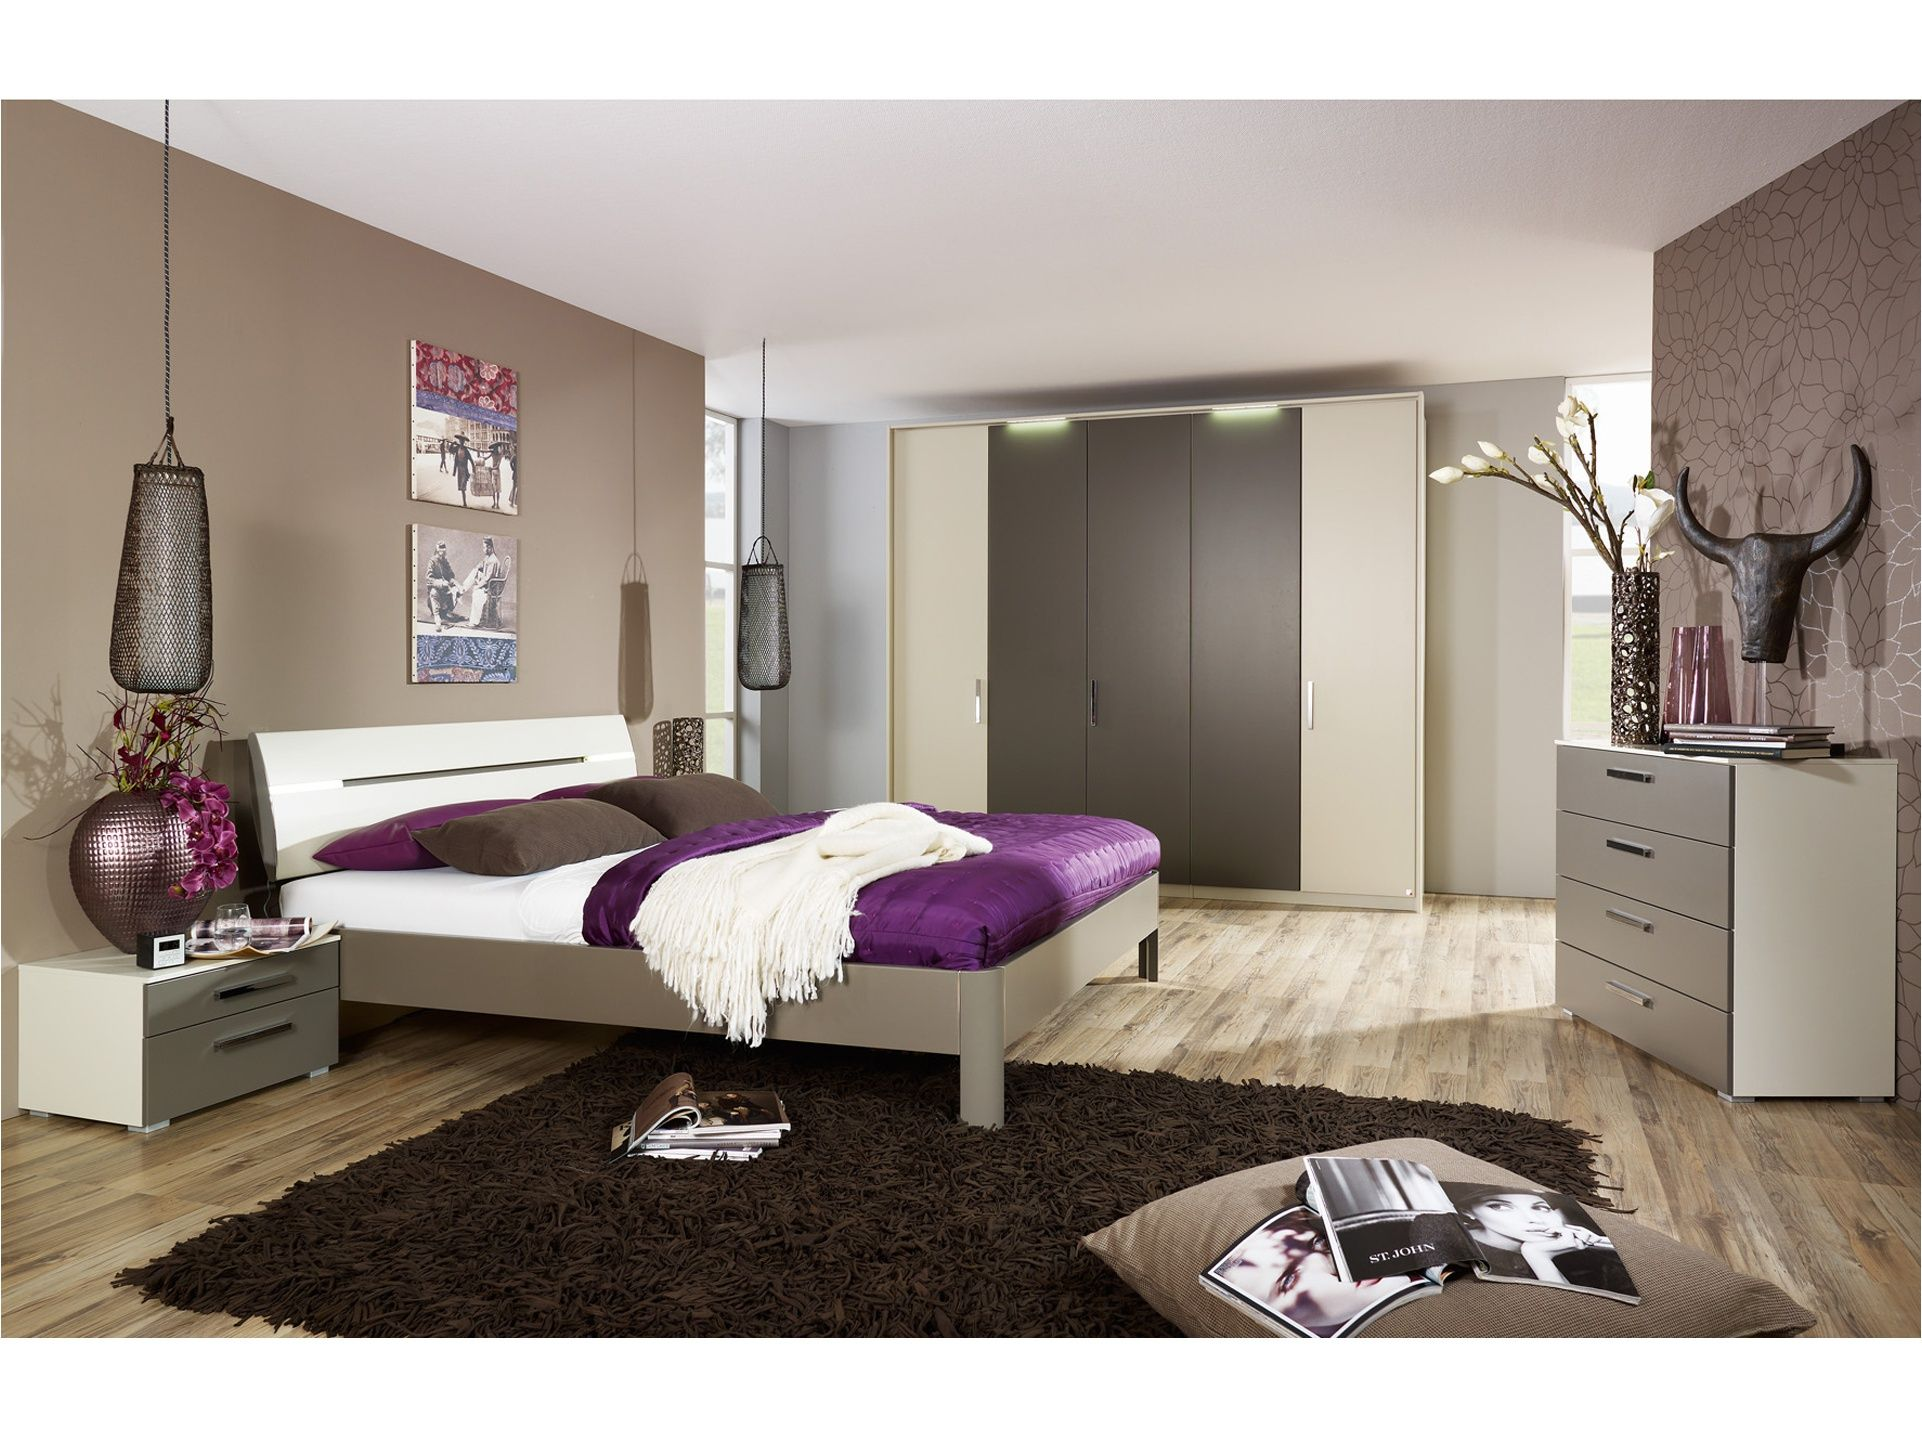 Chambre coucher adulte moderne deco pinterest for Decoration interieur chambre adulte moderne